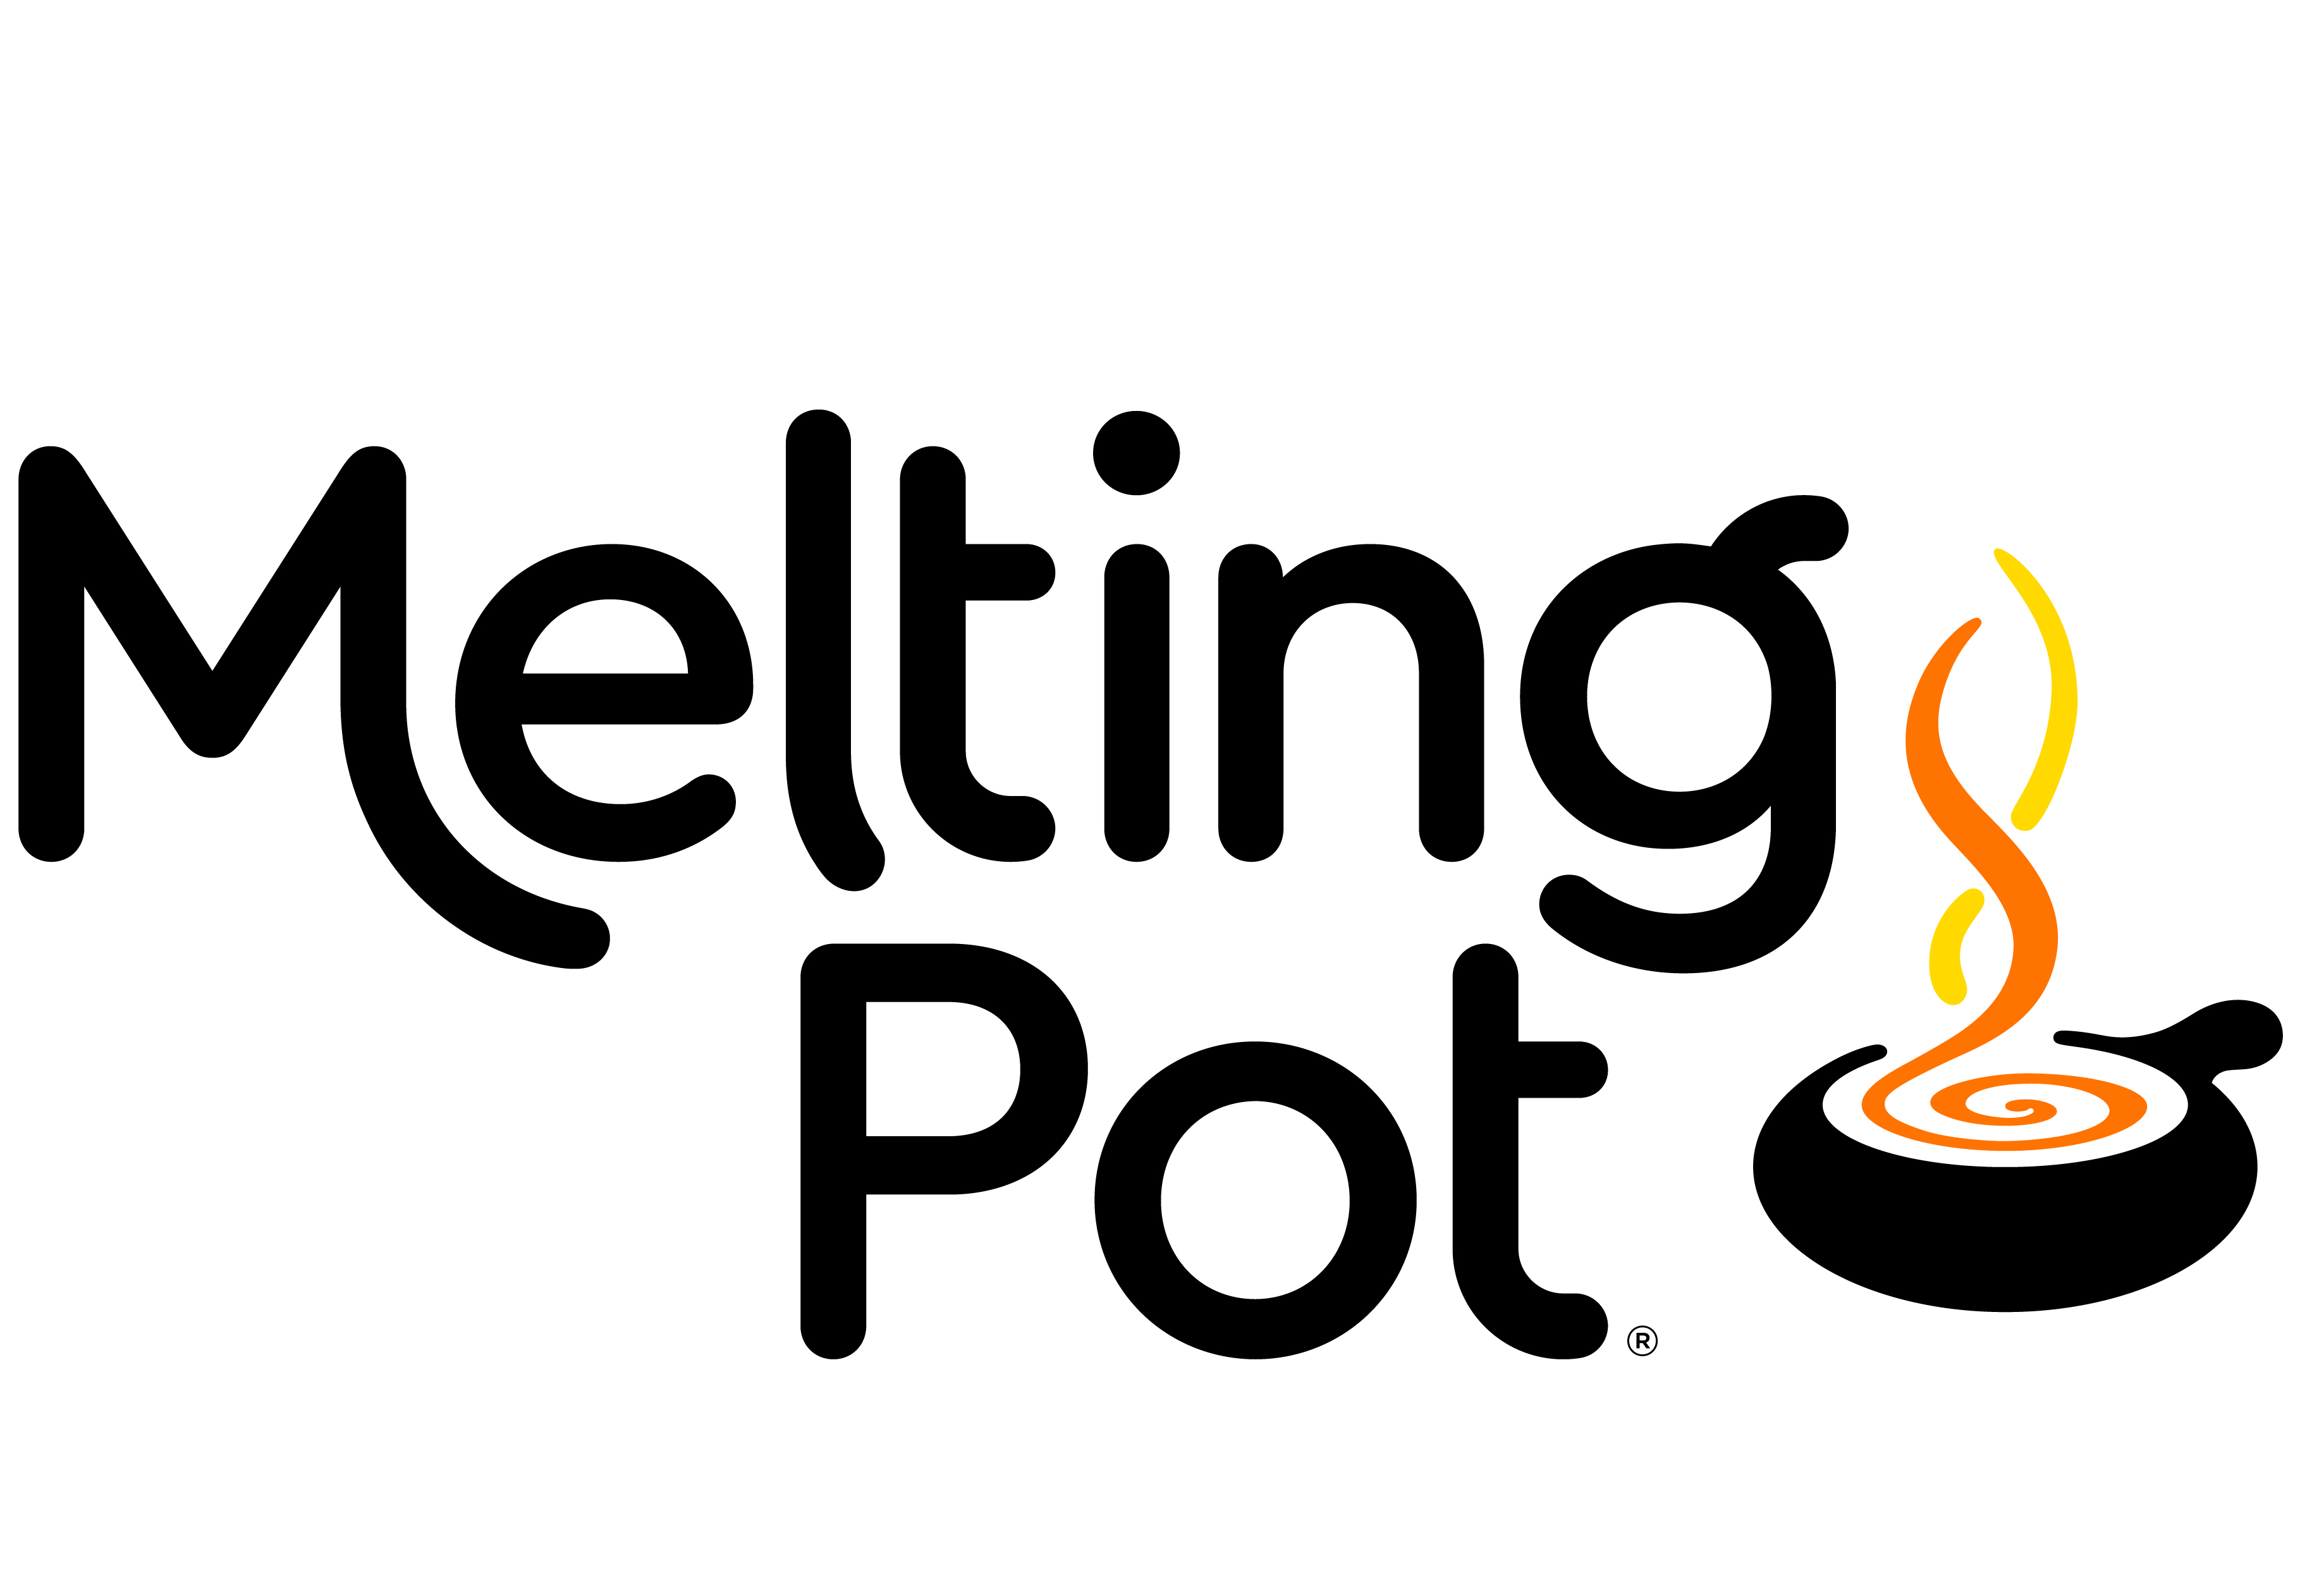 Chance to WIN a $50 Gift Card to The Melting Pot!